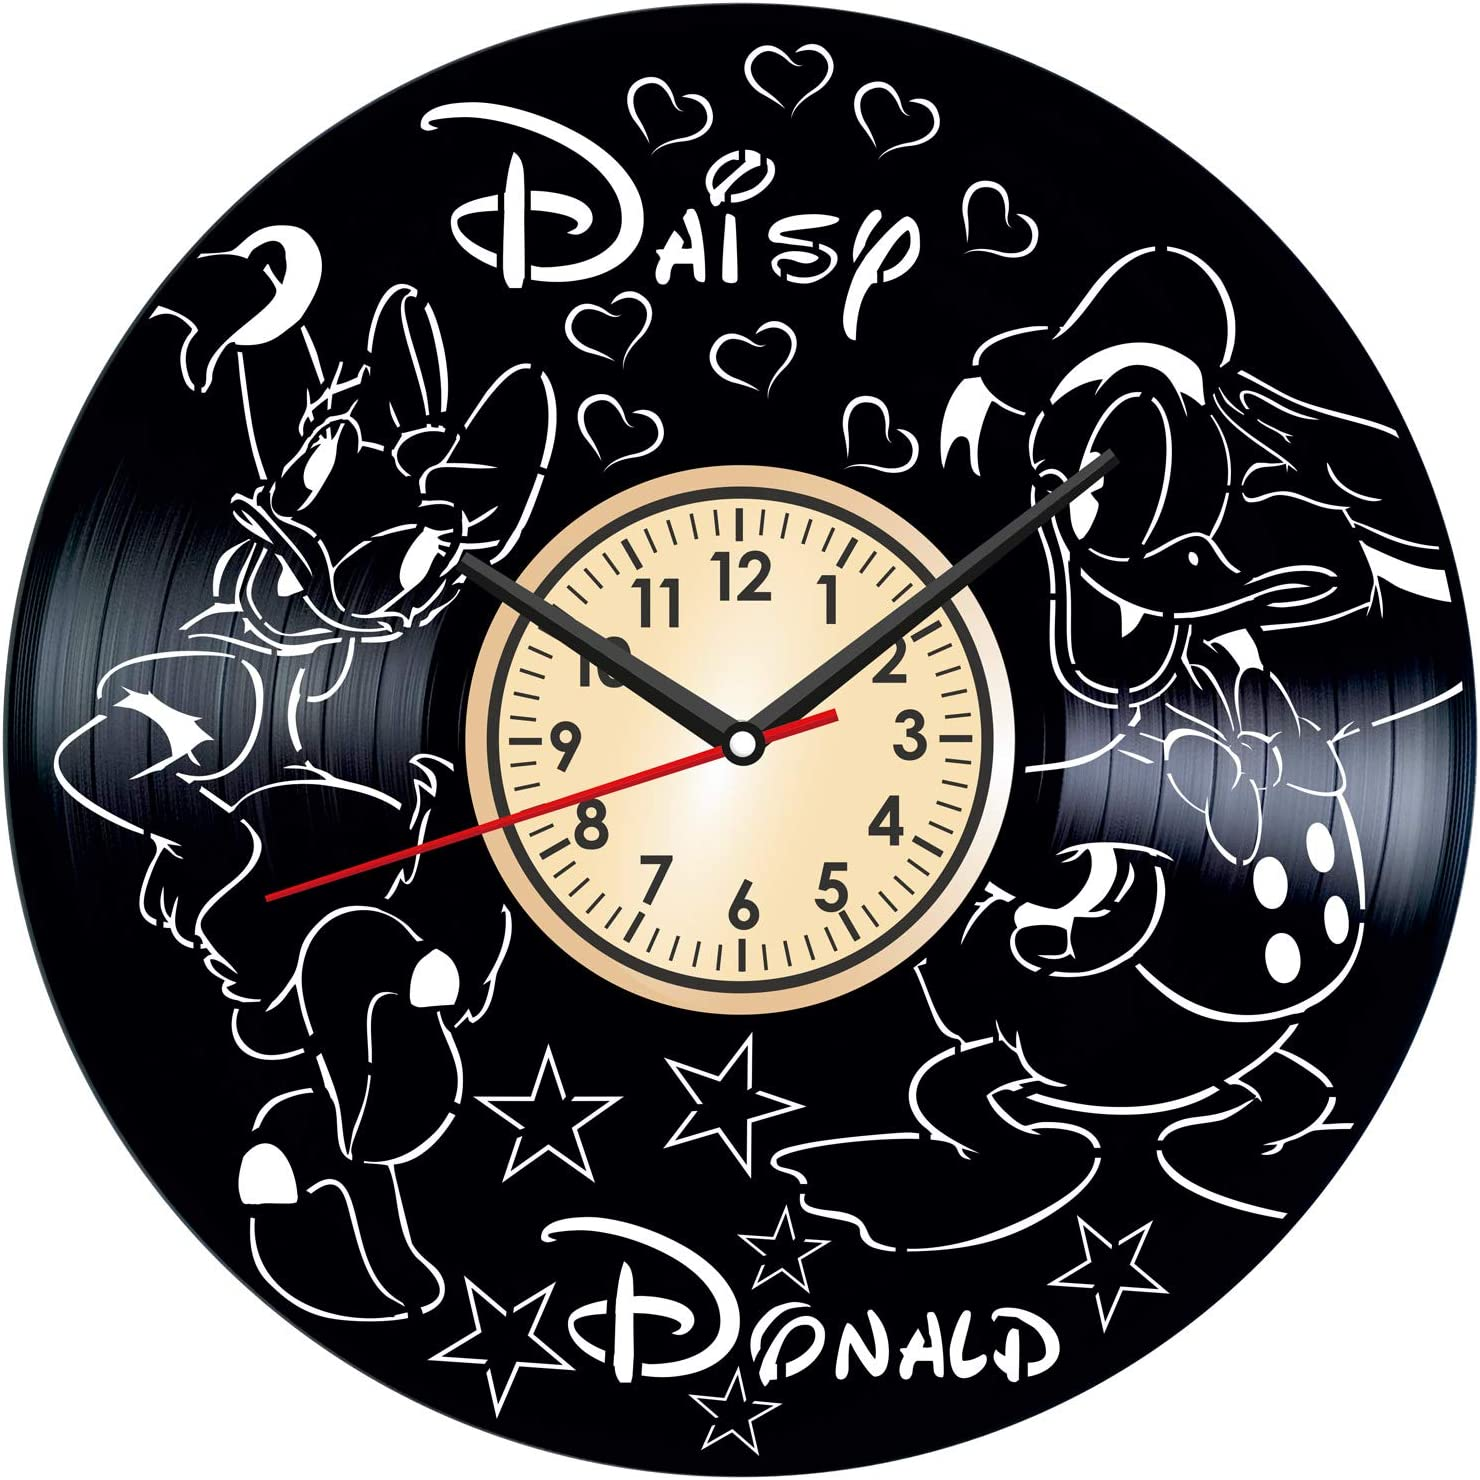 Donald and Daisy Duck Vintage Vinyl Wall Clock - Great Home Decor for Bedroom Kitchen Living Room Idea Birthday Christmas Anniversary for Him Her - Unique Wall Art - Size 12 Inches